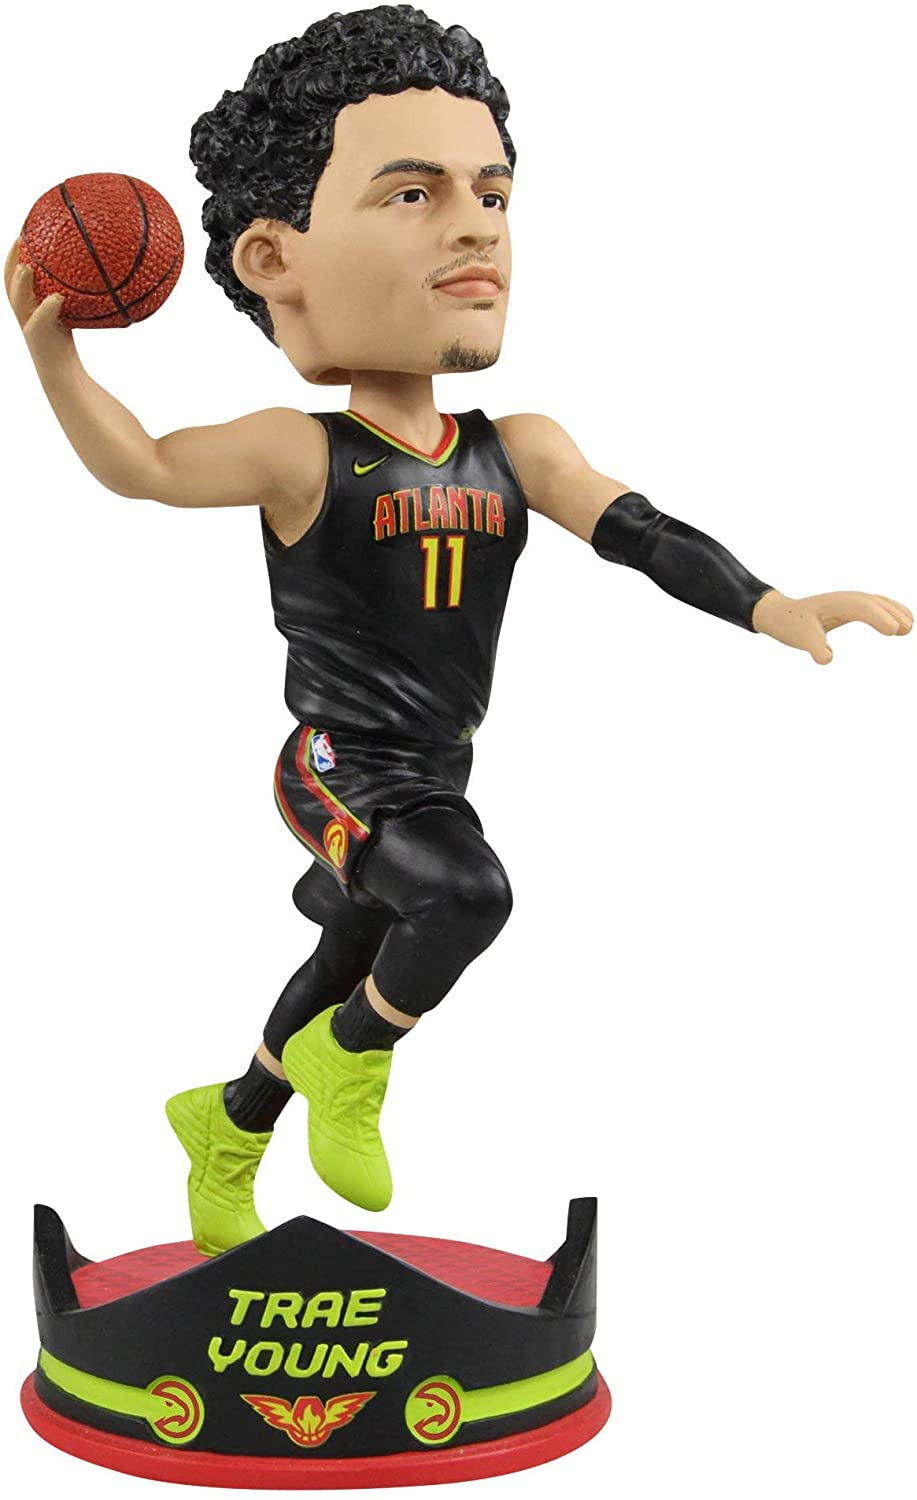 Trae Young bobblehead